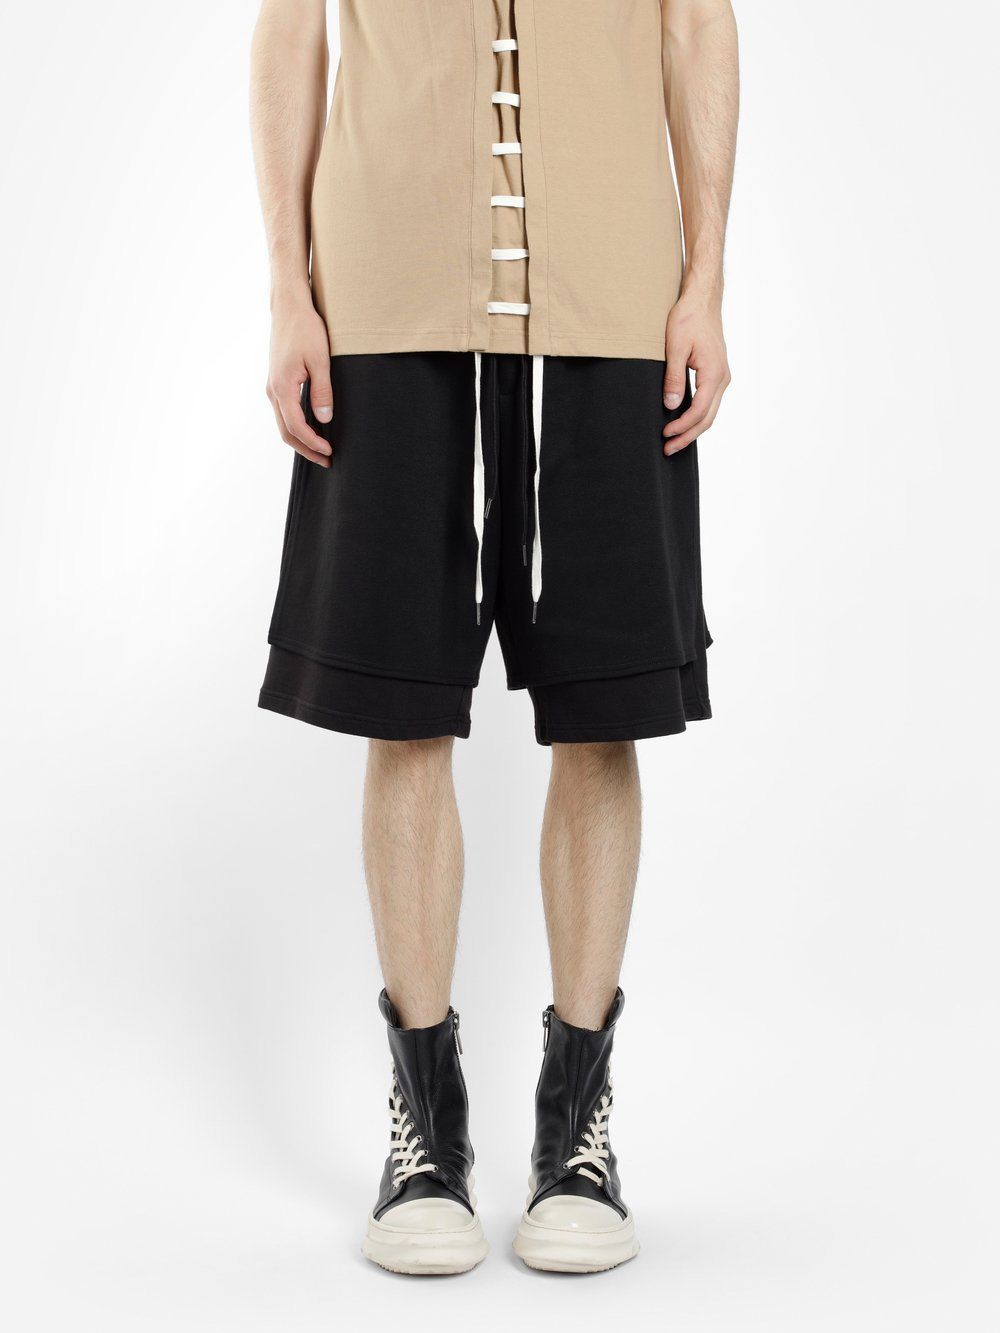 D.GNAK BY KANG.D MEN'S BLACK DOUBLE HEM JERSEY SHORTS